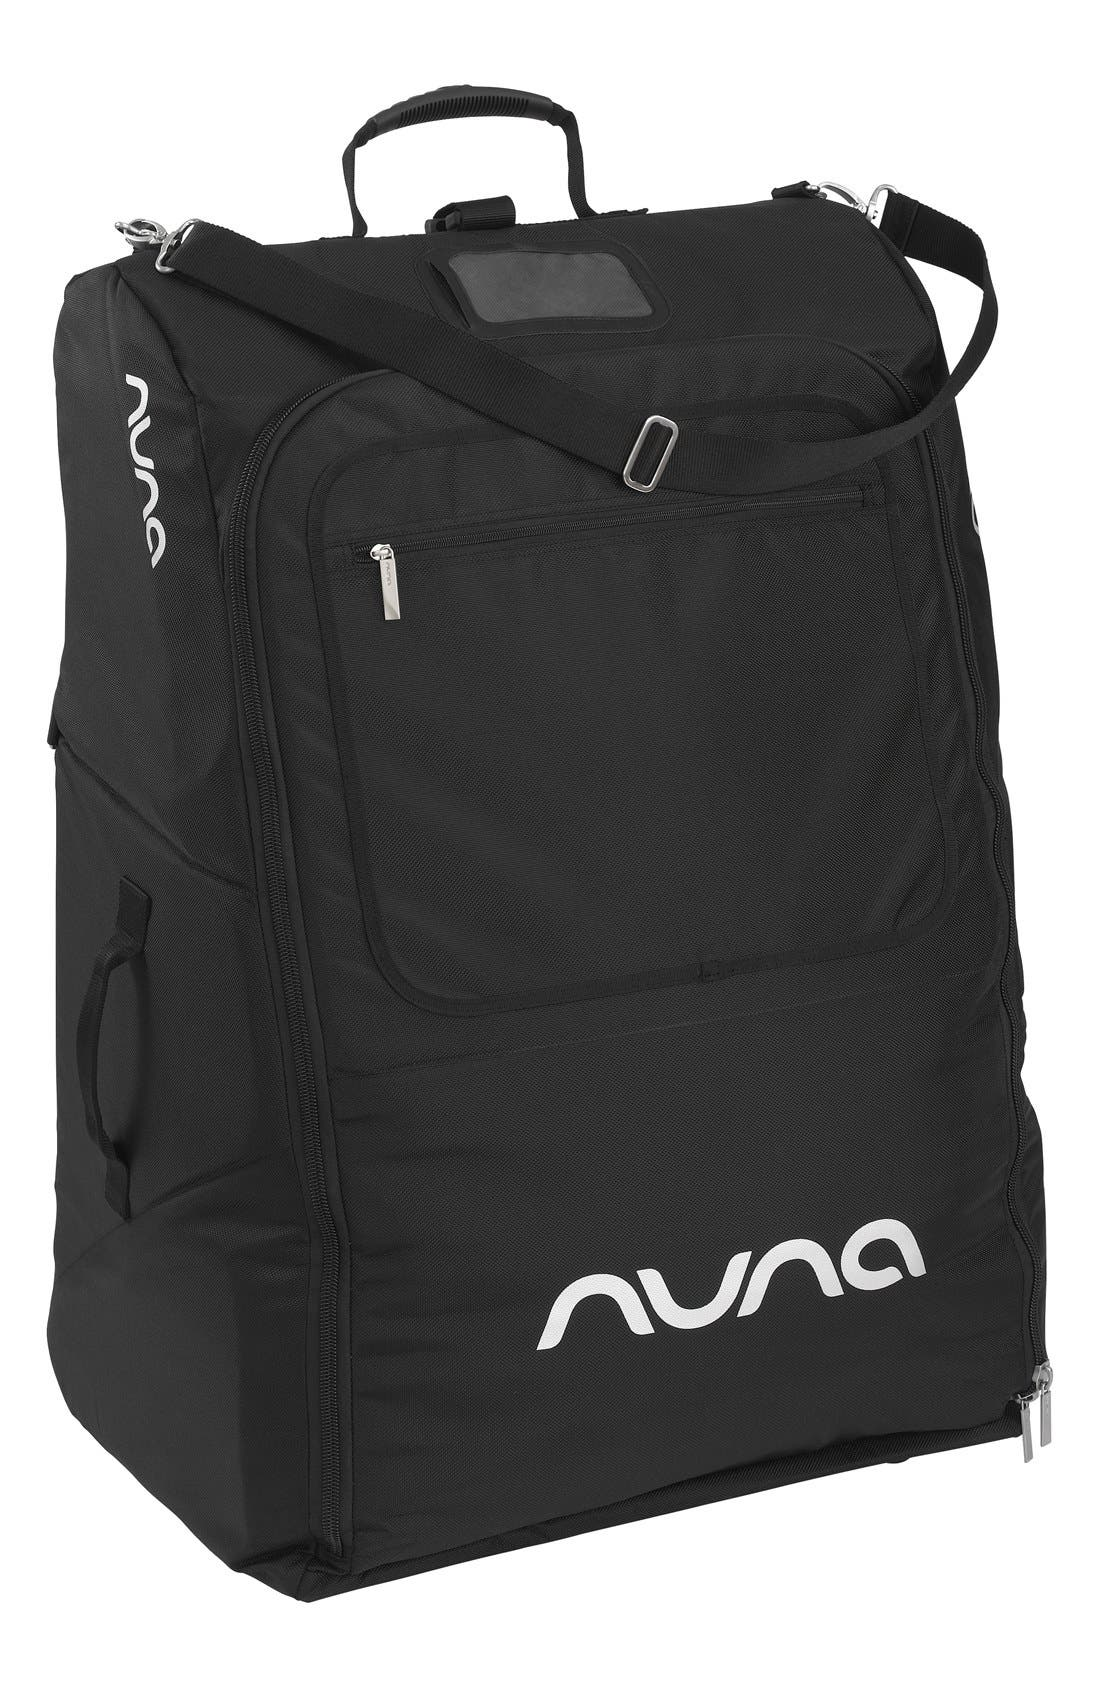 Main Image - nuna Stroller Transport Bag